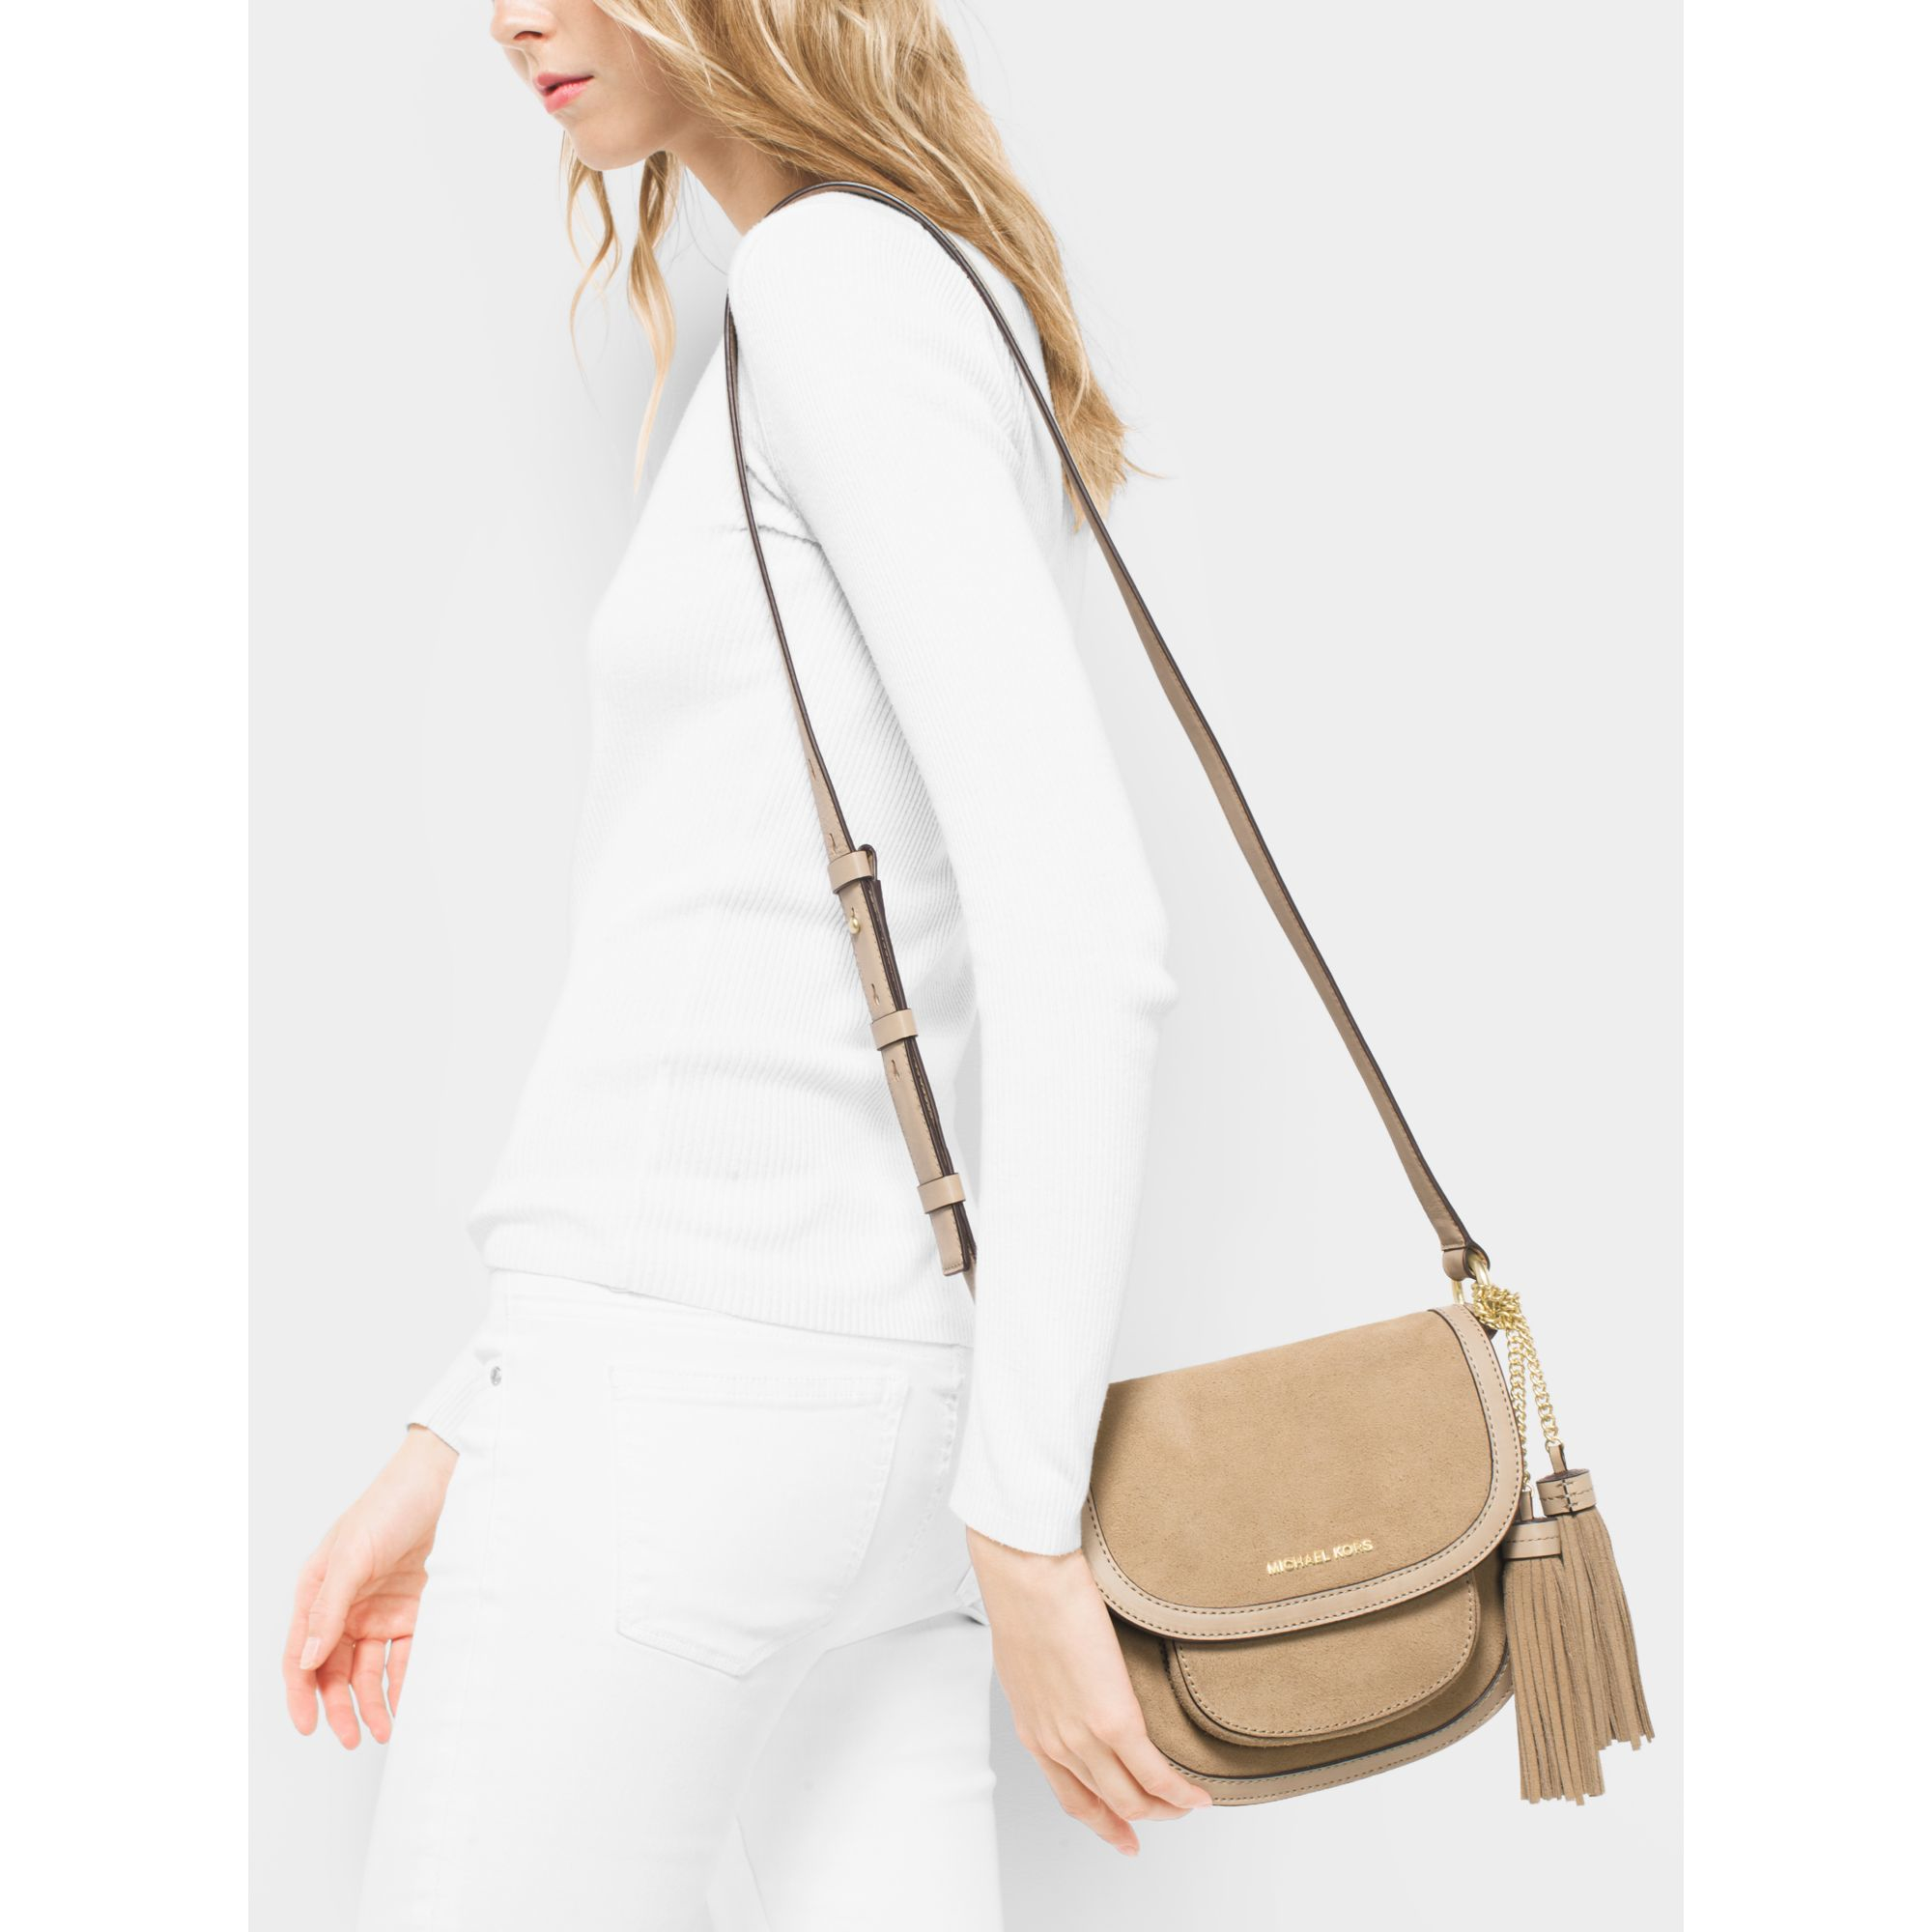 c5aa88159259 ... coupon code for lyst michael kors dunn medium suede saddlebag in  natural 75bbd 518e6